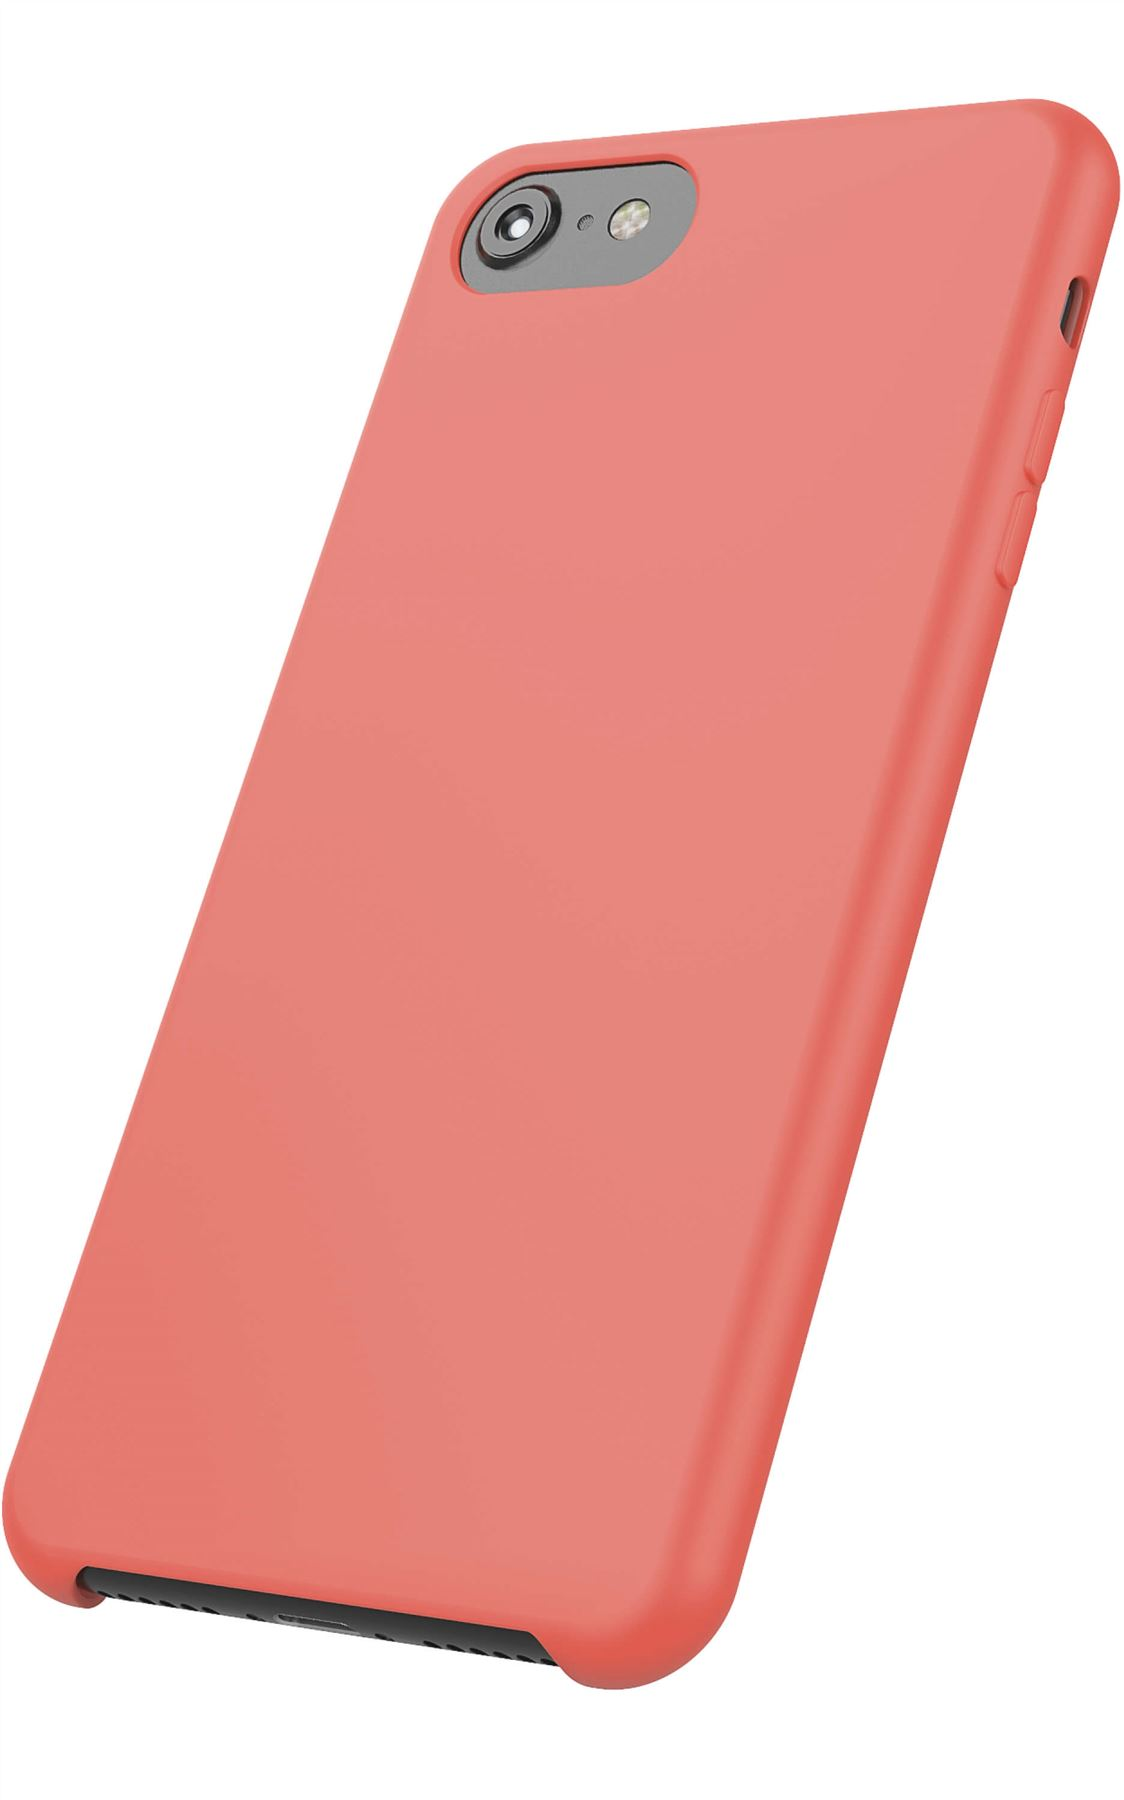 Liquid-Silicone-Shockproof-Case-For-Apple-iPhone-Soft-Matte-Back-Phone-Cover thumbnail 23